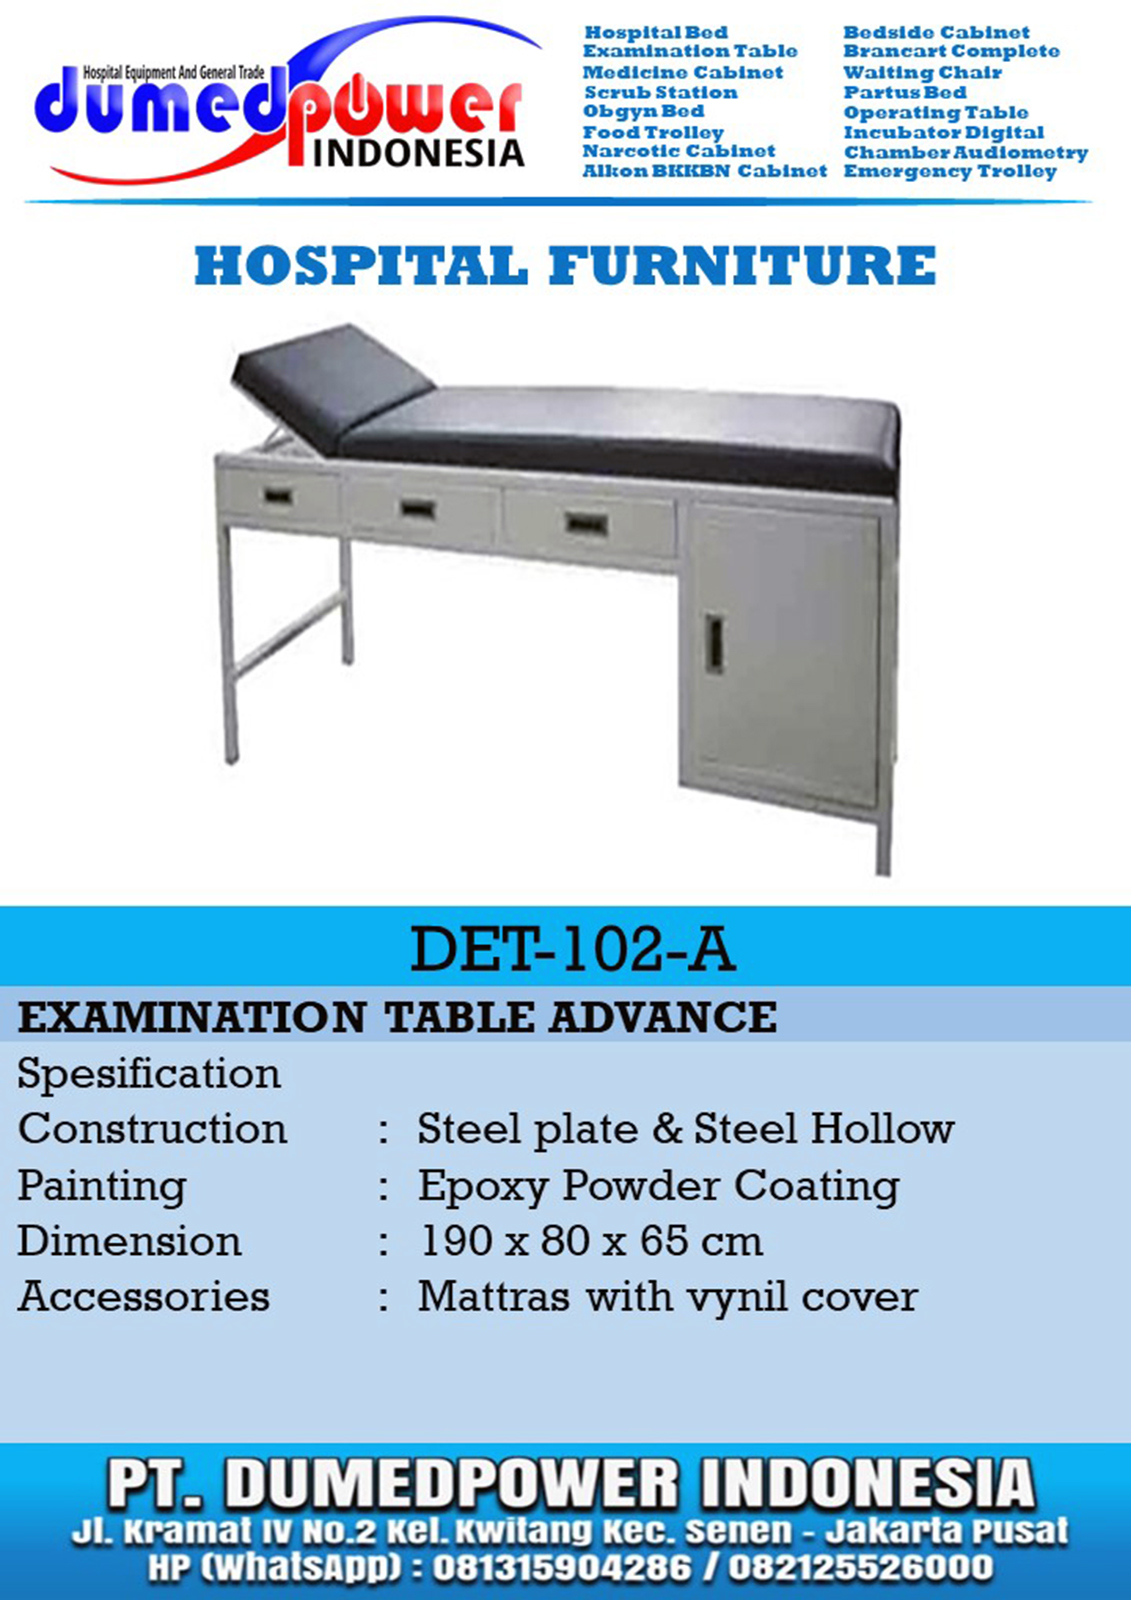 Examination Table Advance DET-102-A